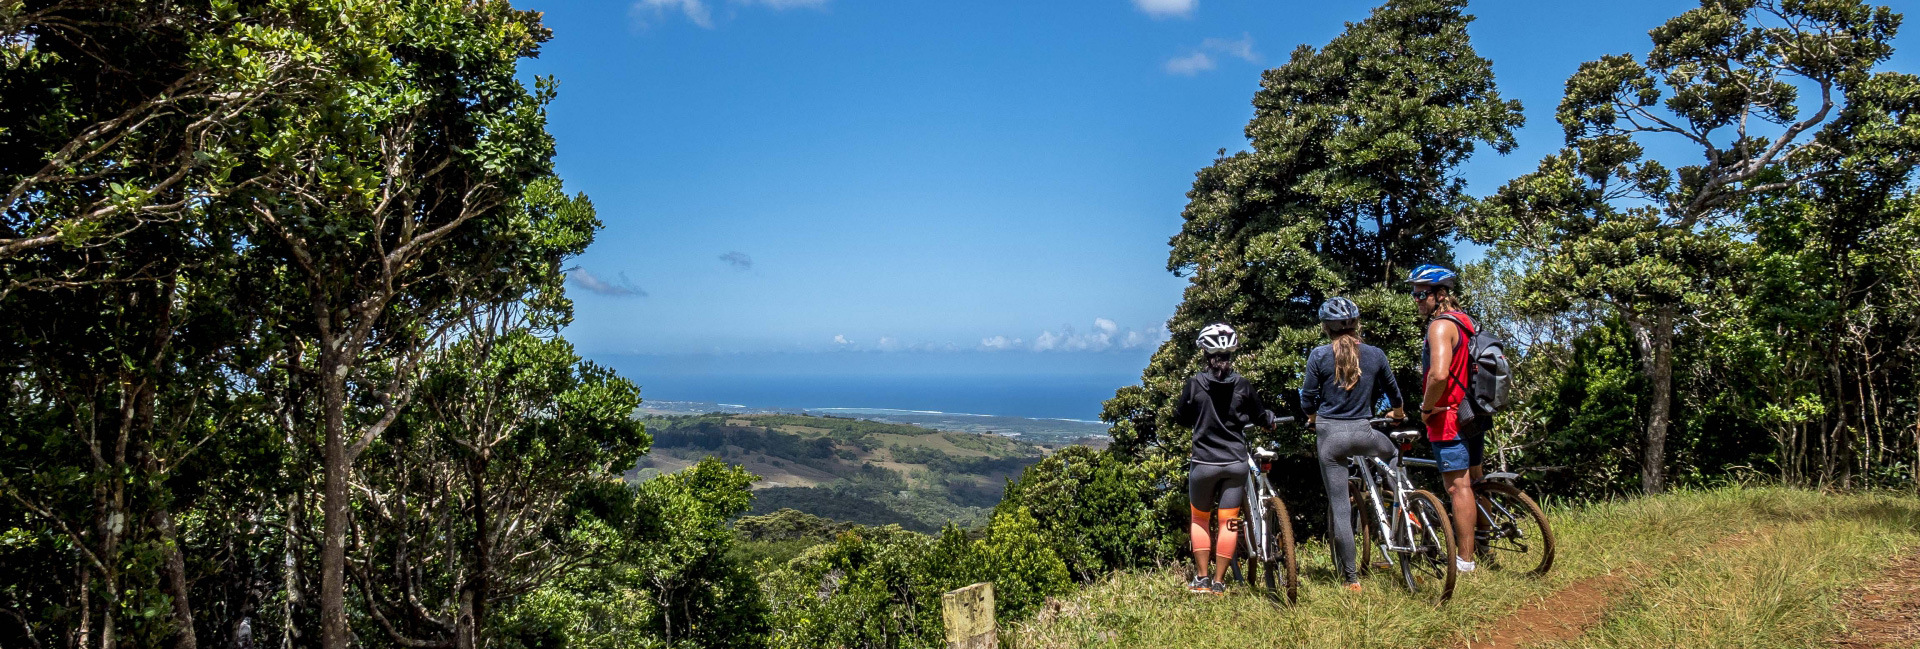 down-hill-mountain-biking-chamarel-mauritius